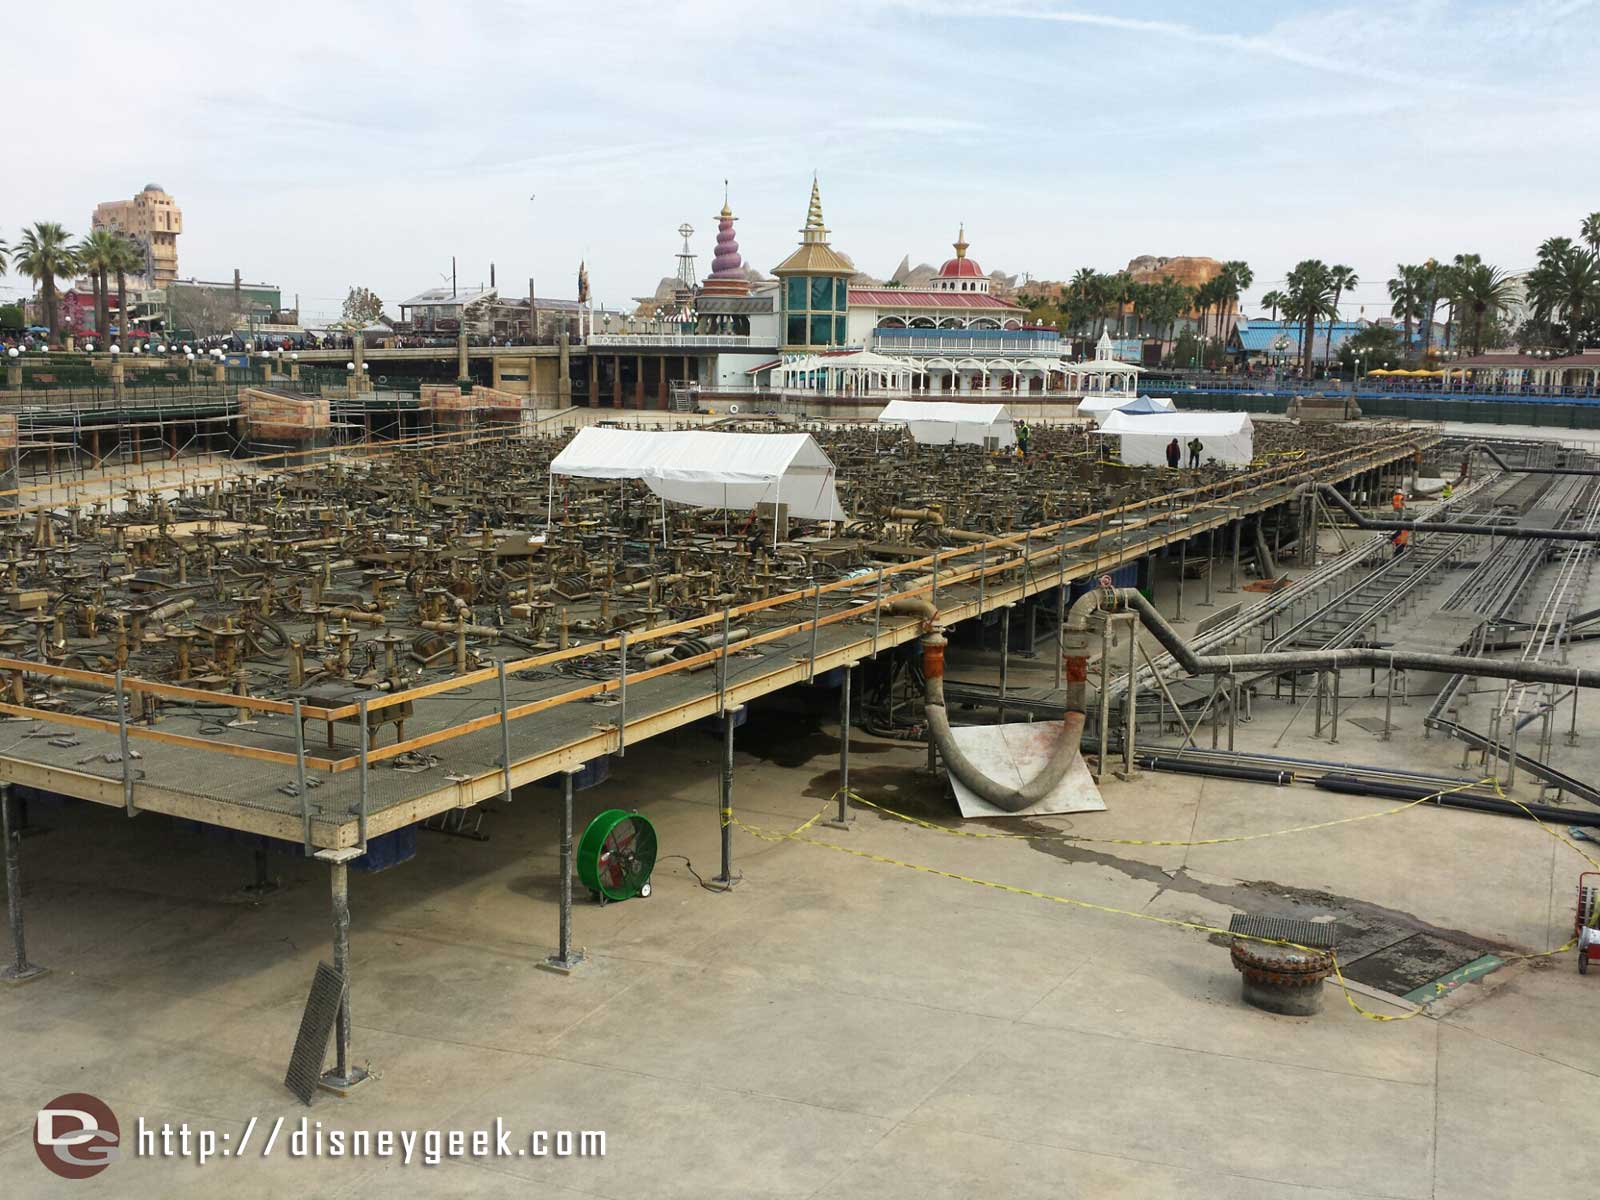 Work continues on the World of Color platforms